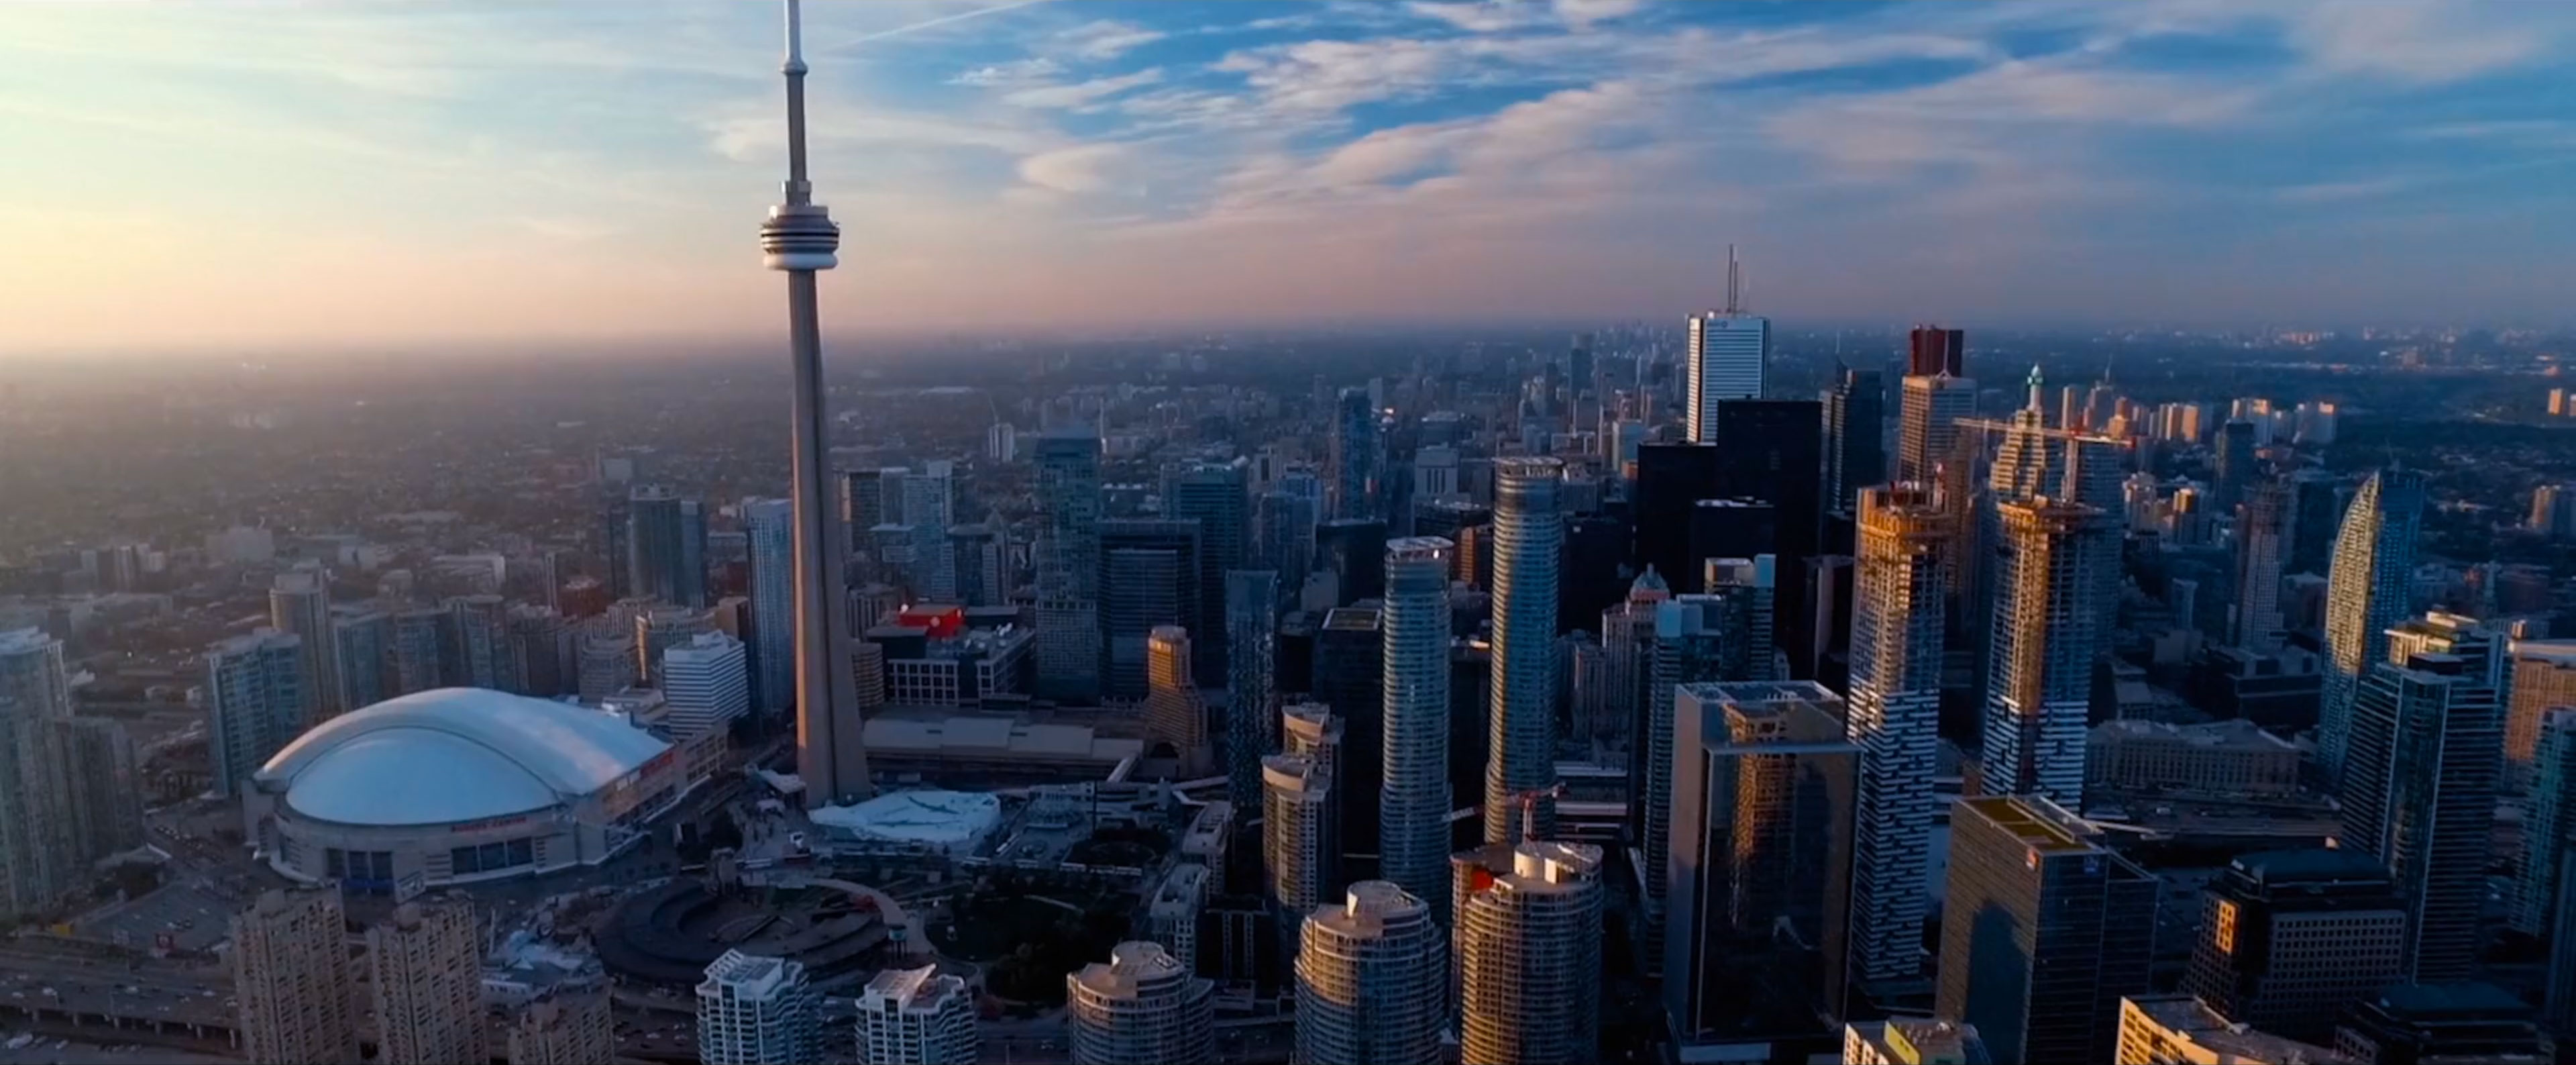 Early morning skyline view of downtown Toronto, featuring the CN Tower.